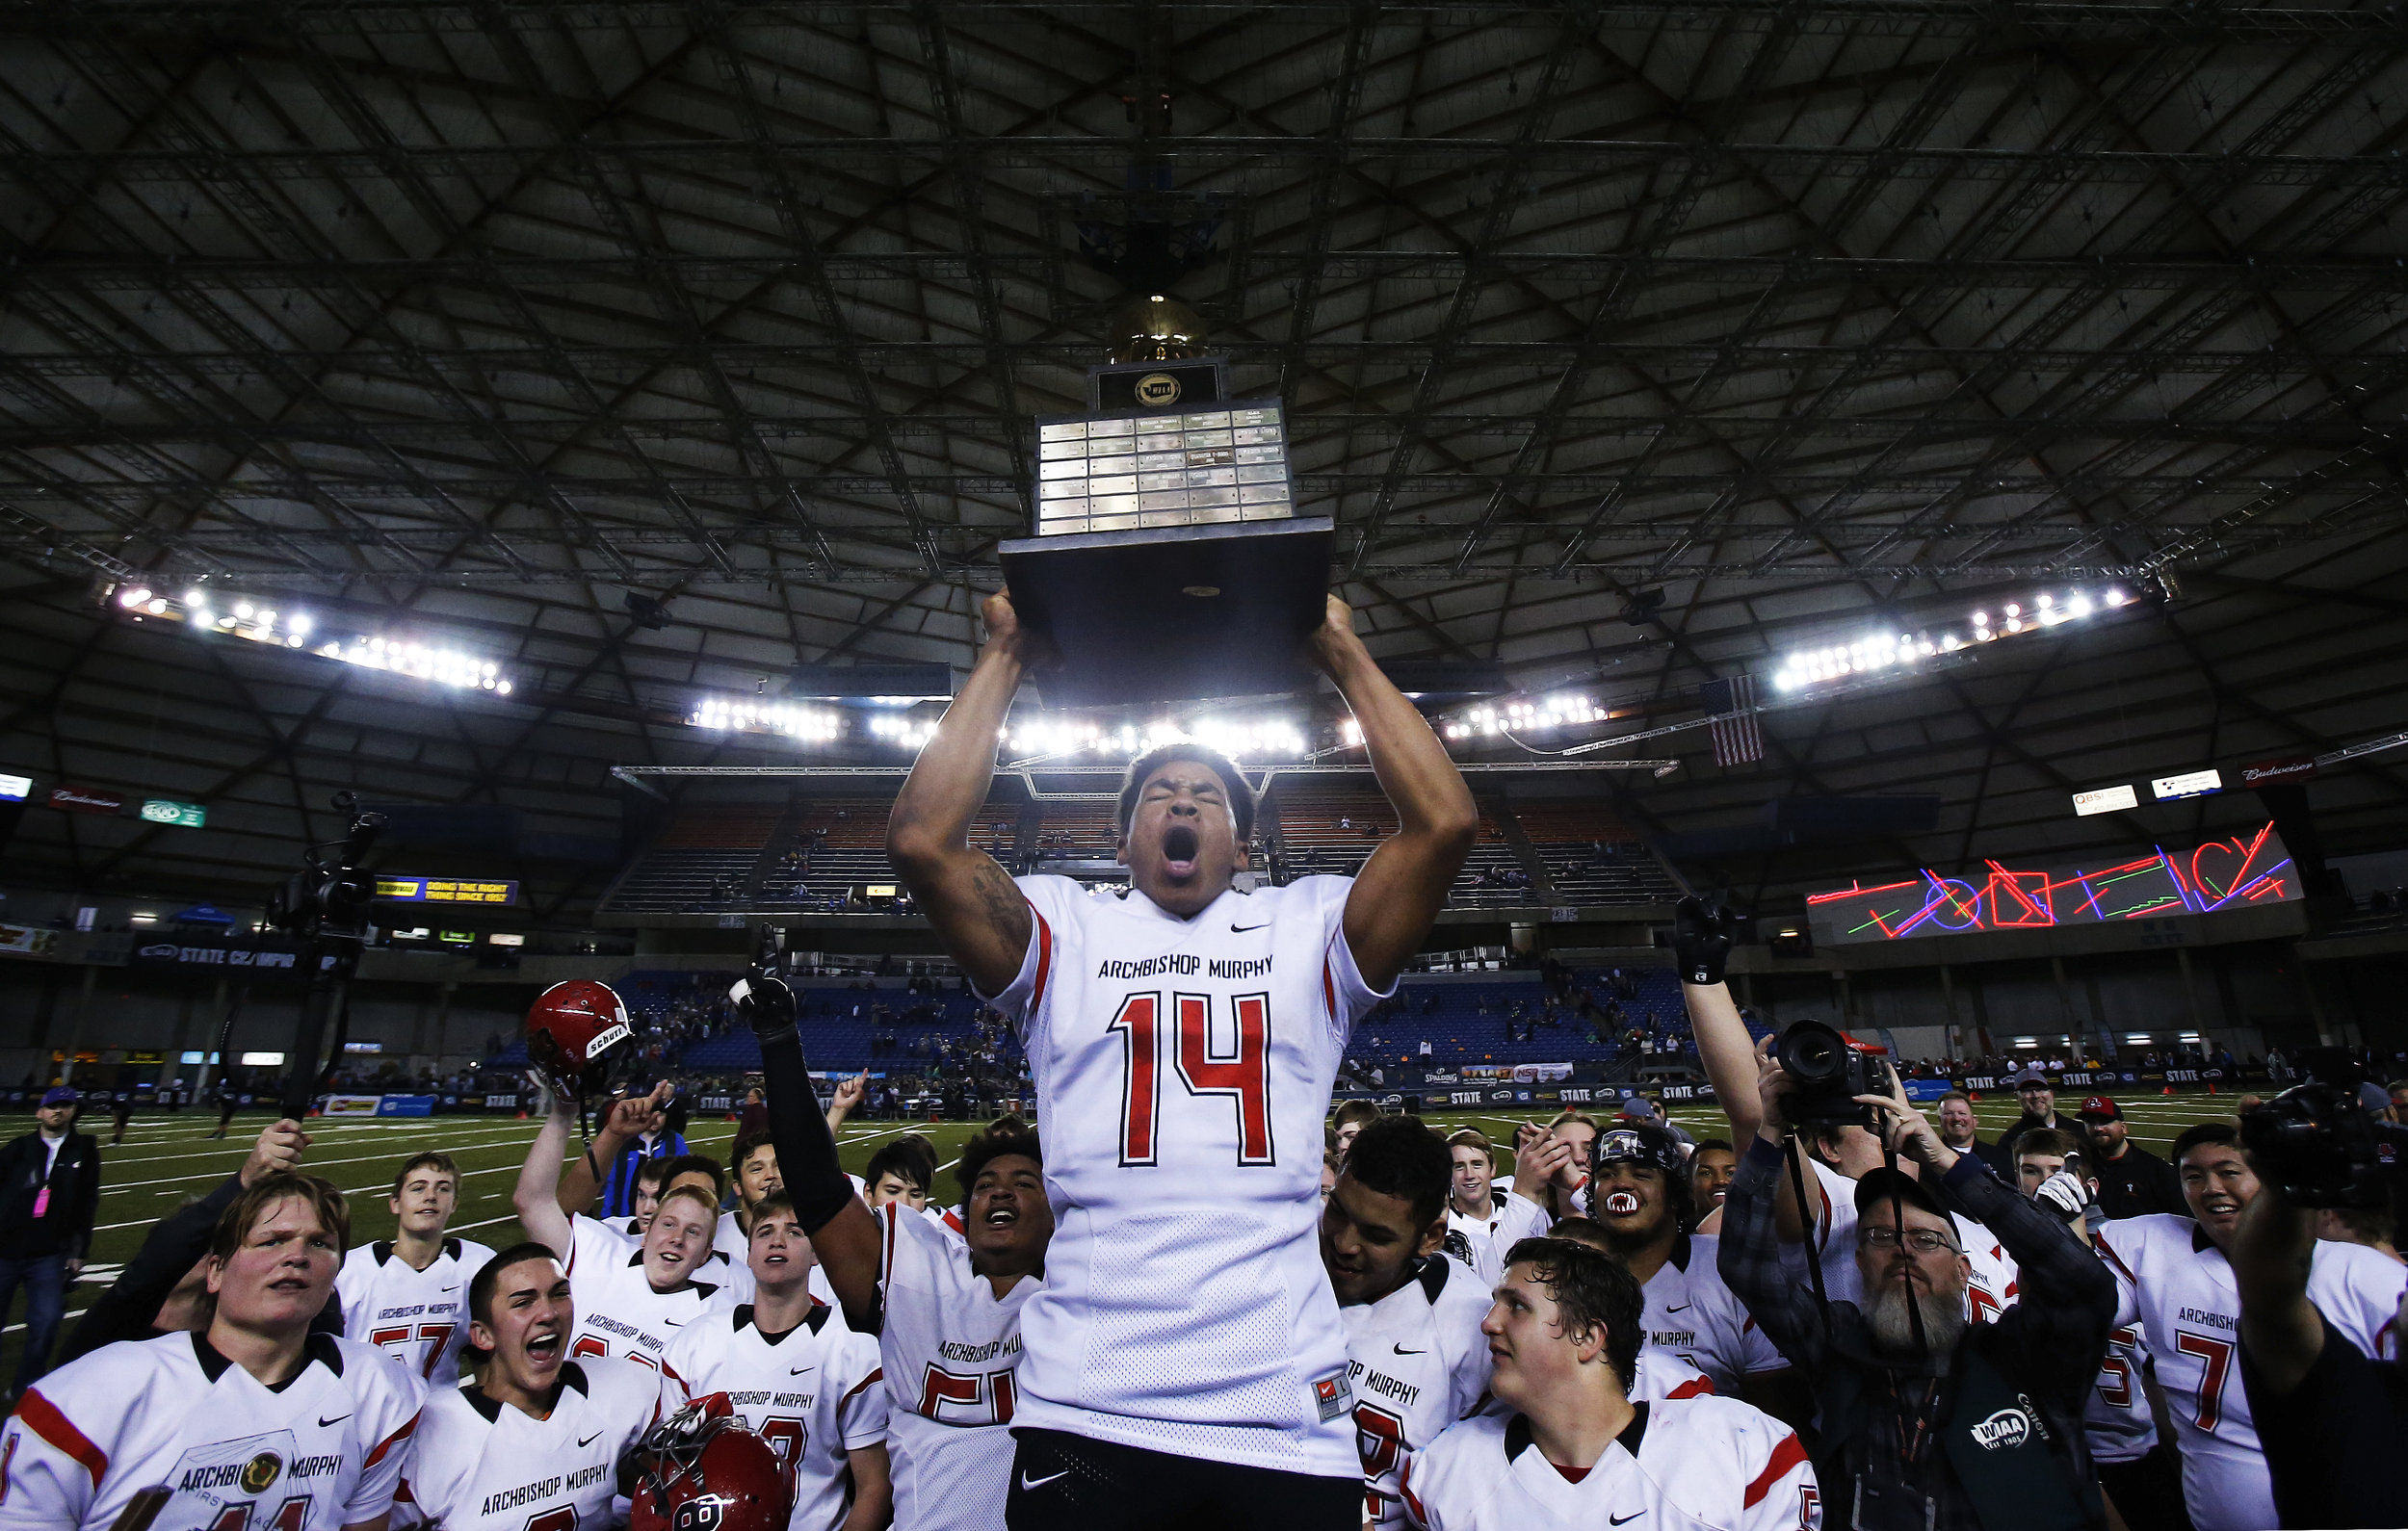 Archbishop Murphy Wildcats wide receiver Anfernee Gurley (14)celebrates by raising the 2A State Championship trophy after defeating the Liberty Patriots 56-14 on Saturday, December 3, 2016, inside the Tacoma Dome.